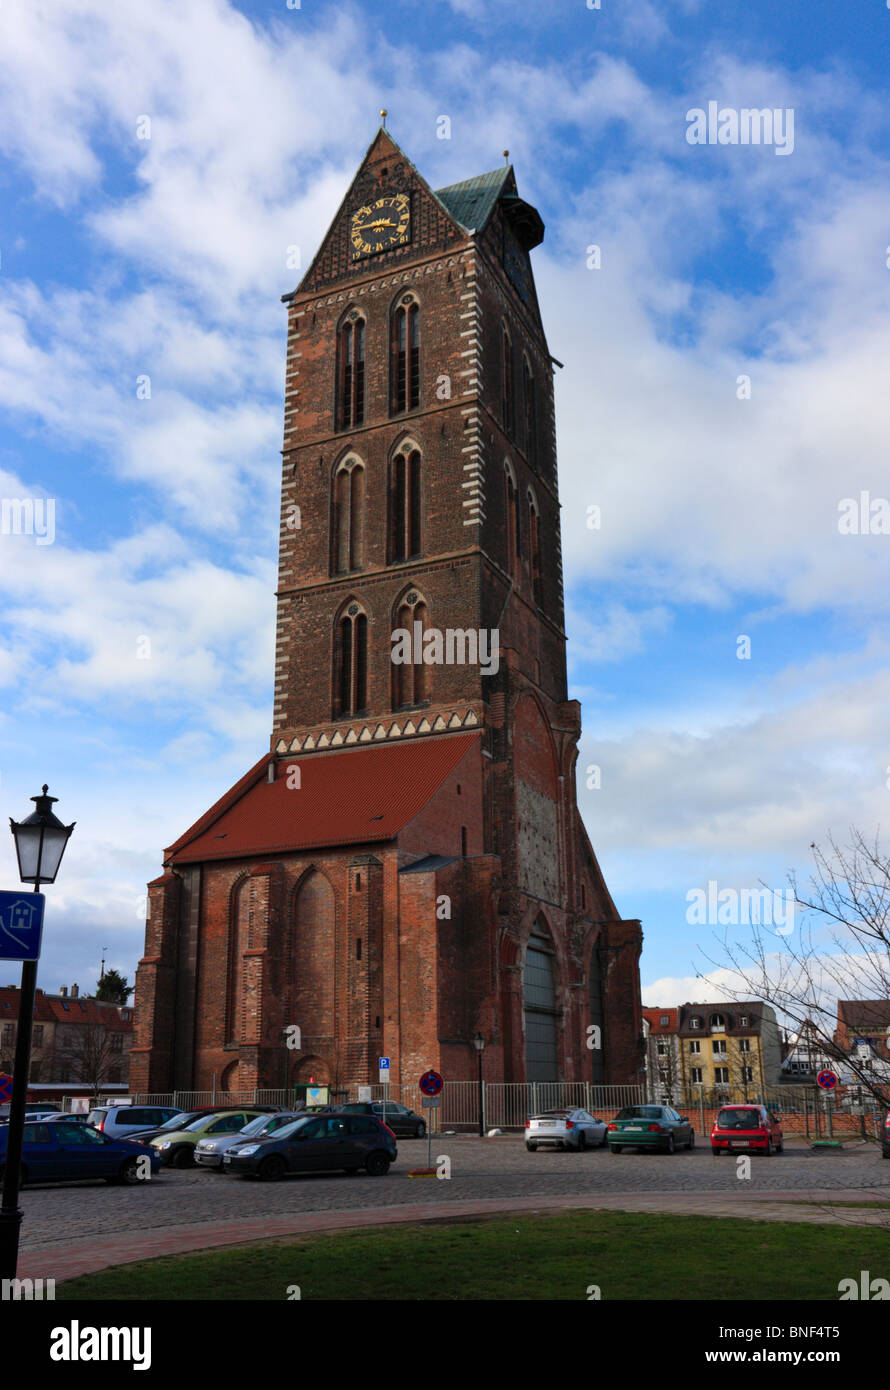 Main Church in Wismar, Germany - Stock Image